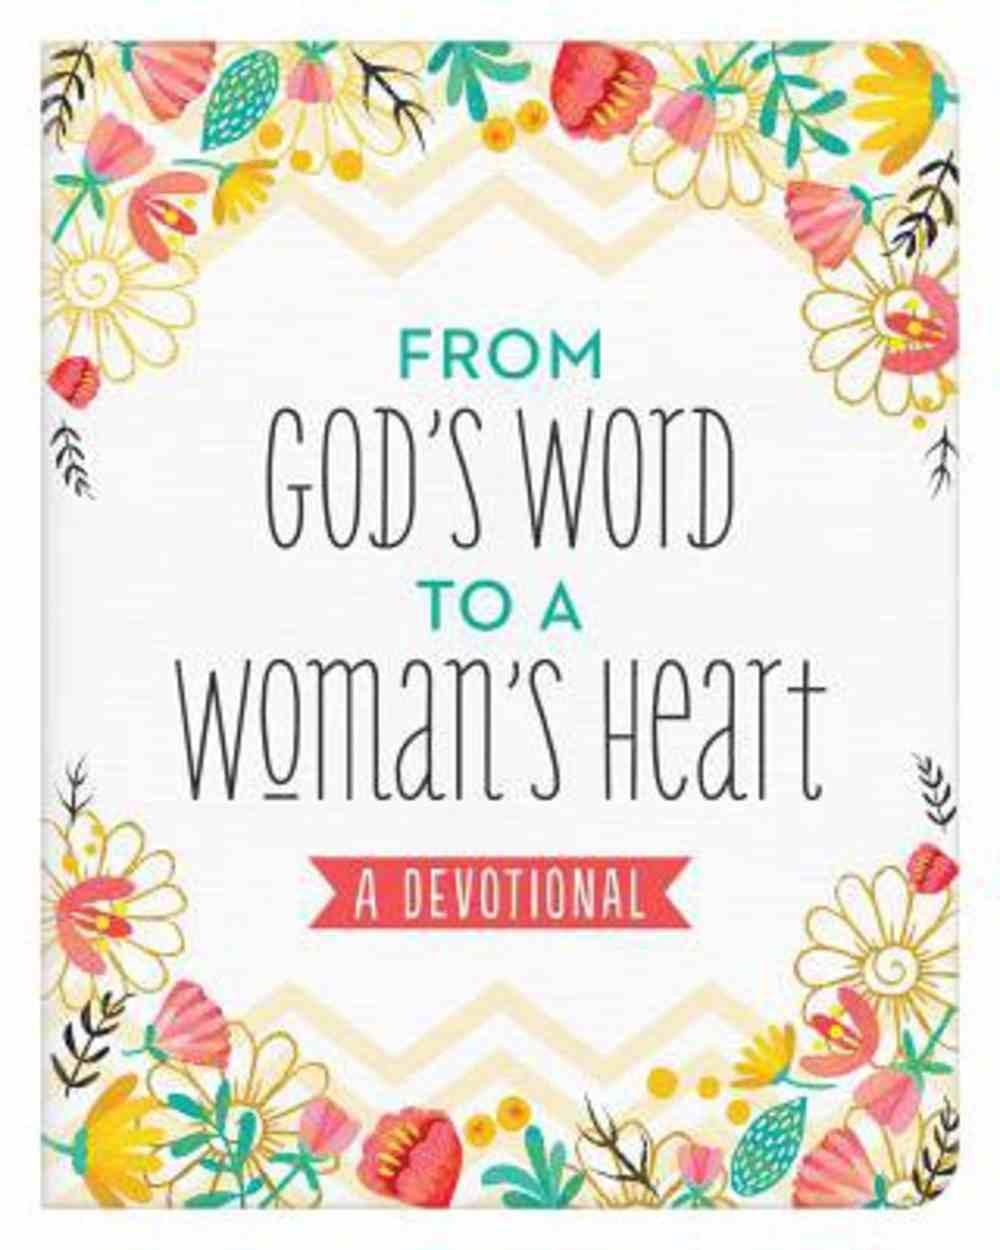 From God's Word to a Woman's Heart: A Devotional Paperback